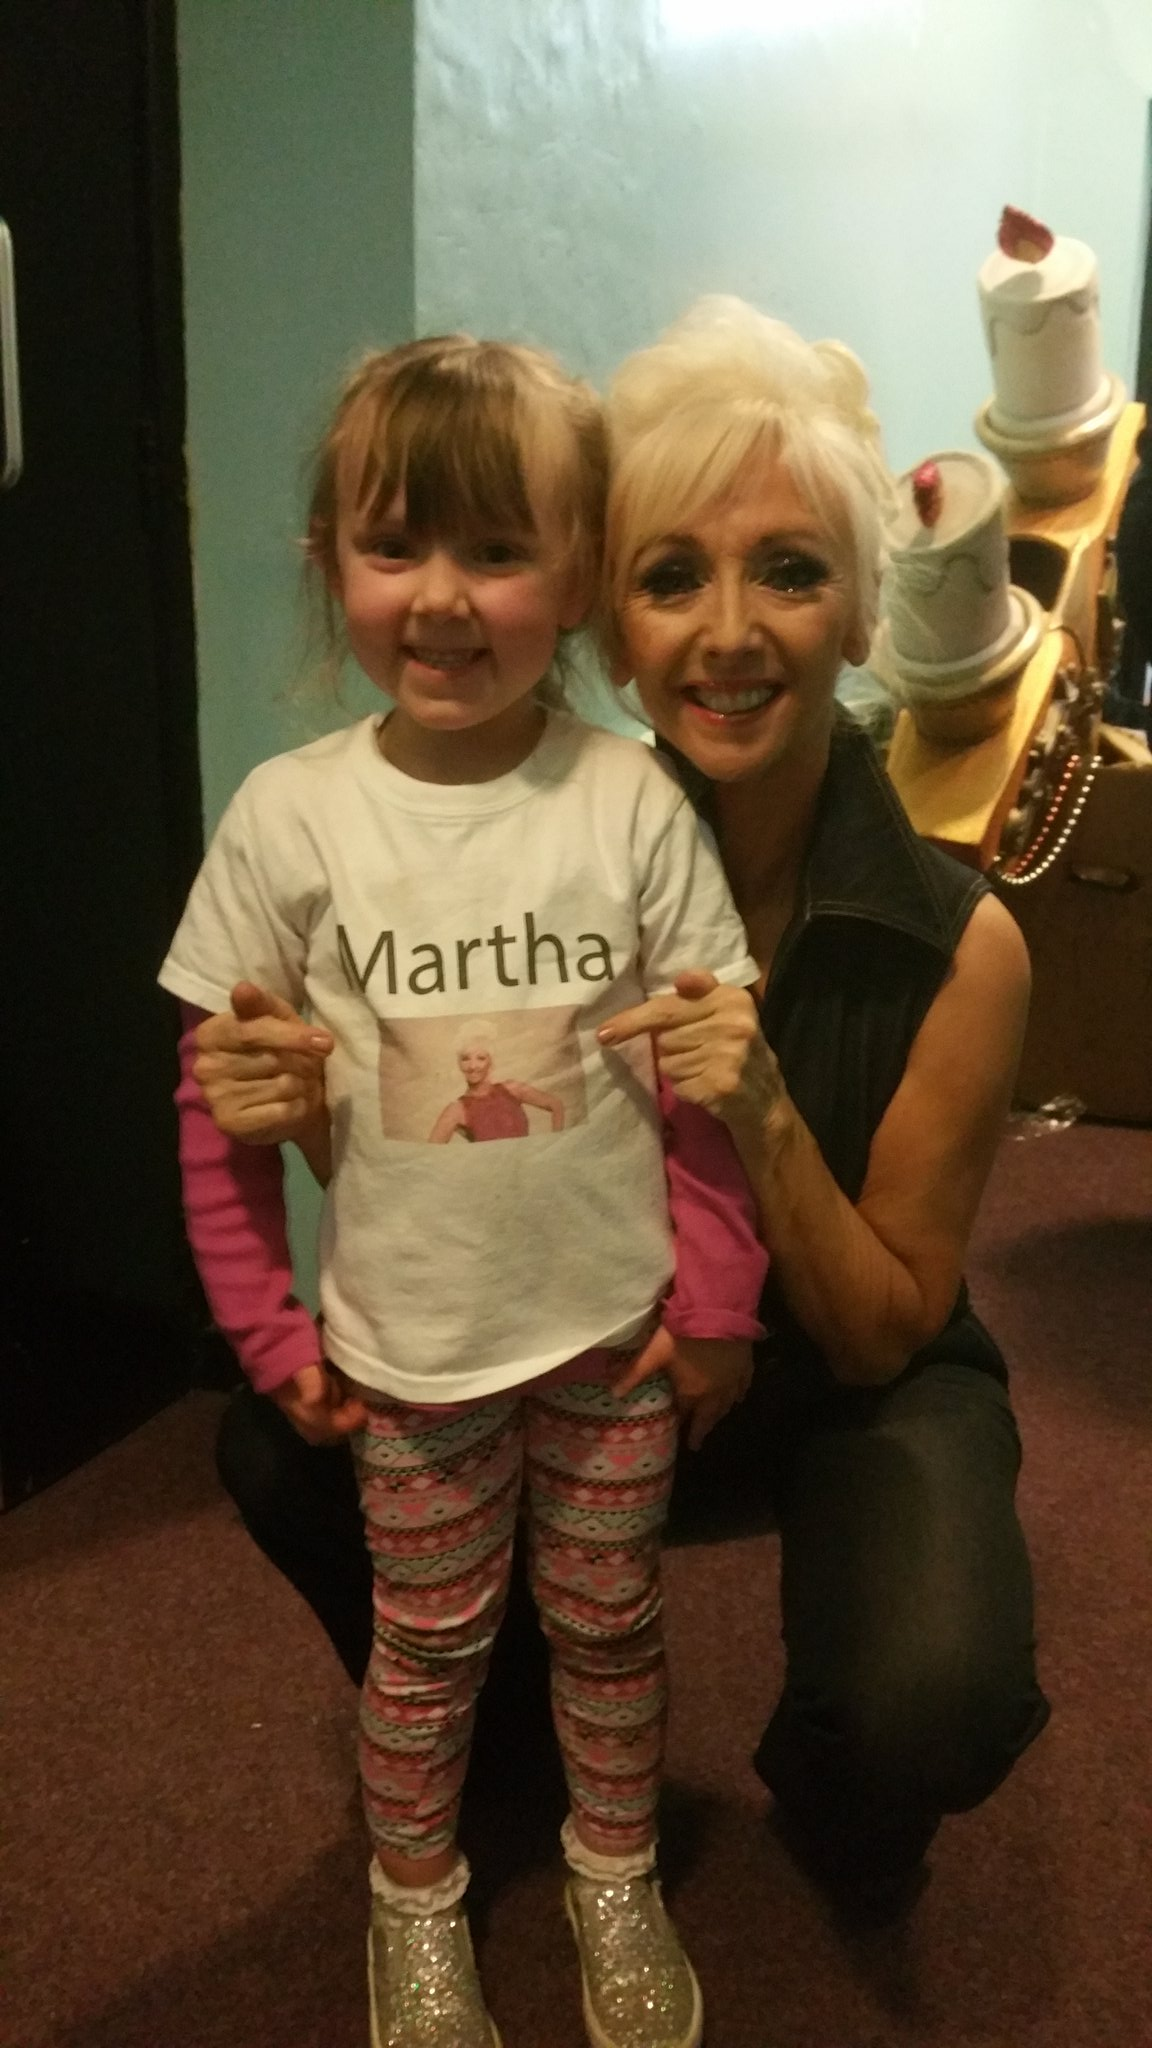 My number 1 fan came to the show with a pic of me on her Tshirt Isn't she adorable 😊 https://t.co/tQSDABdo8I